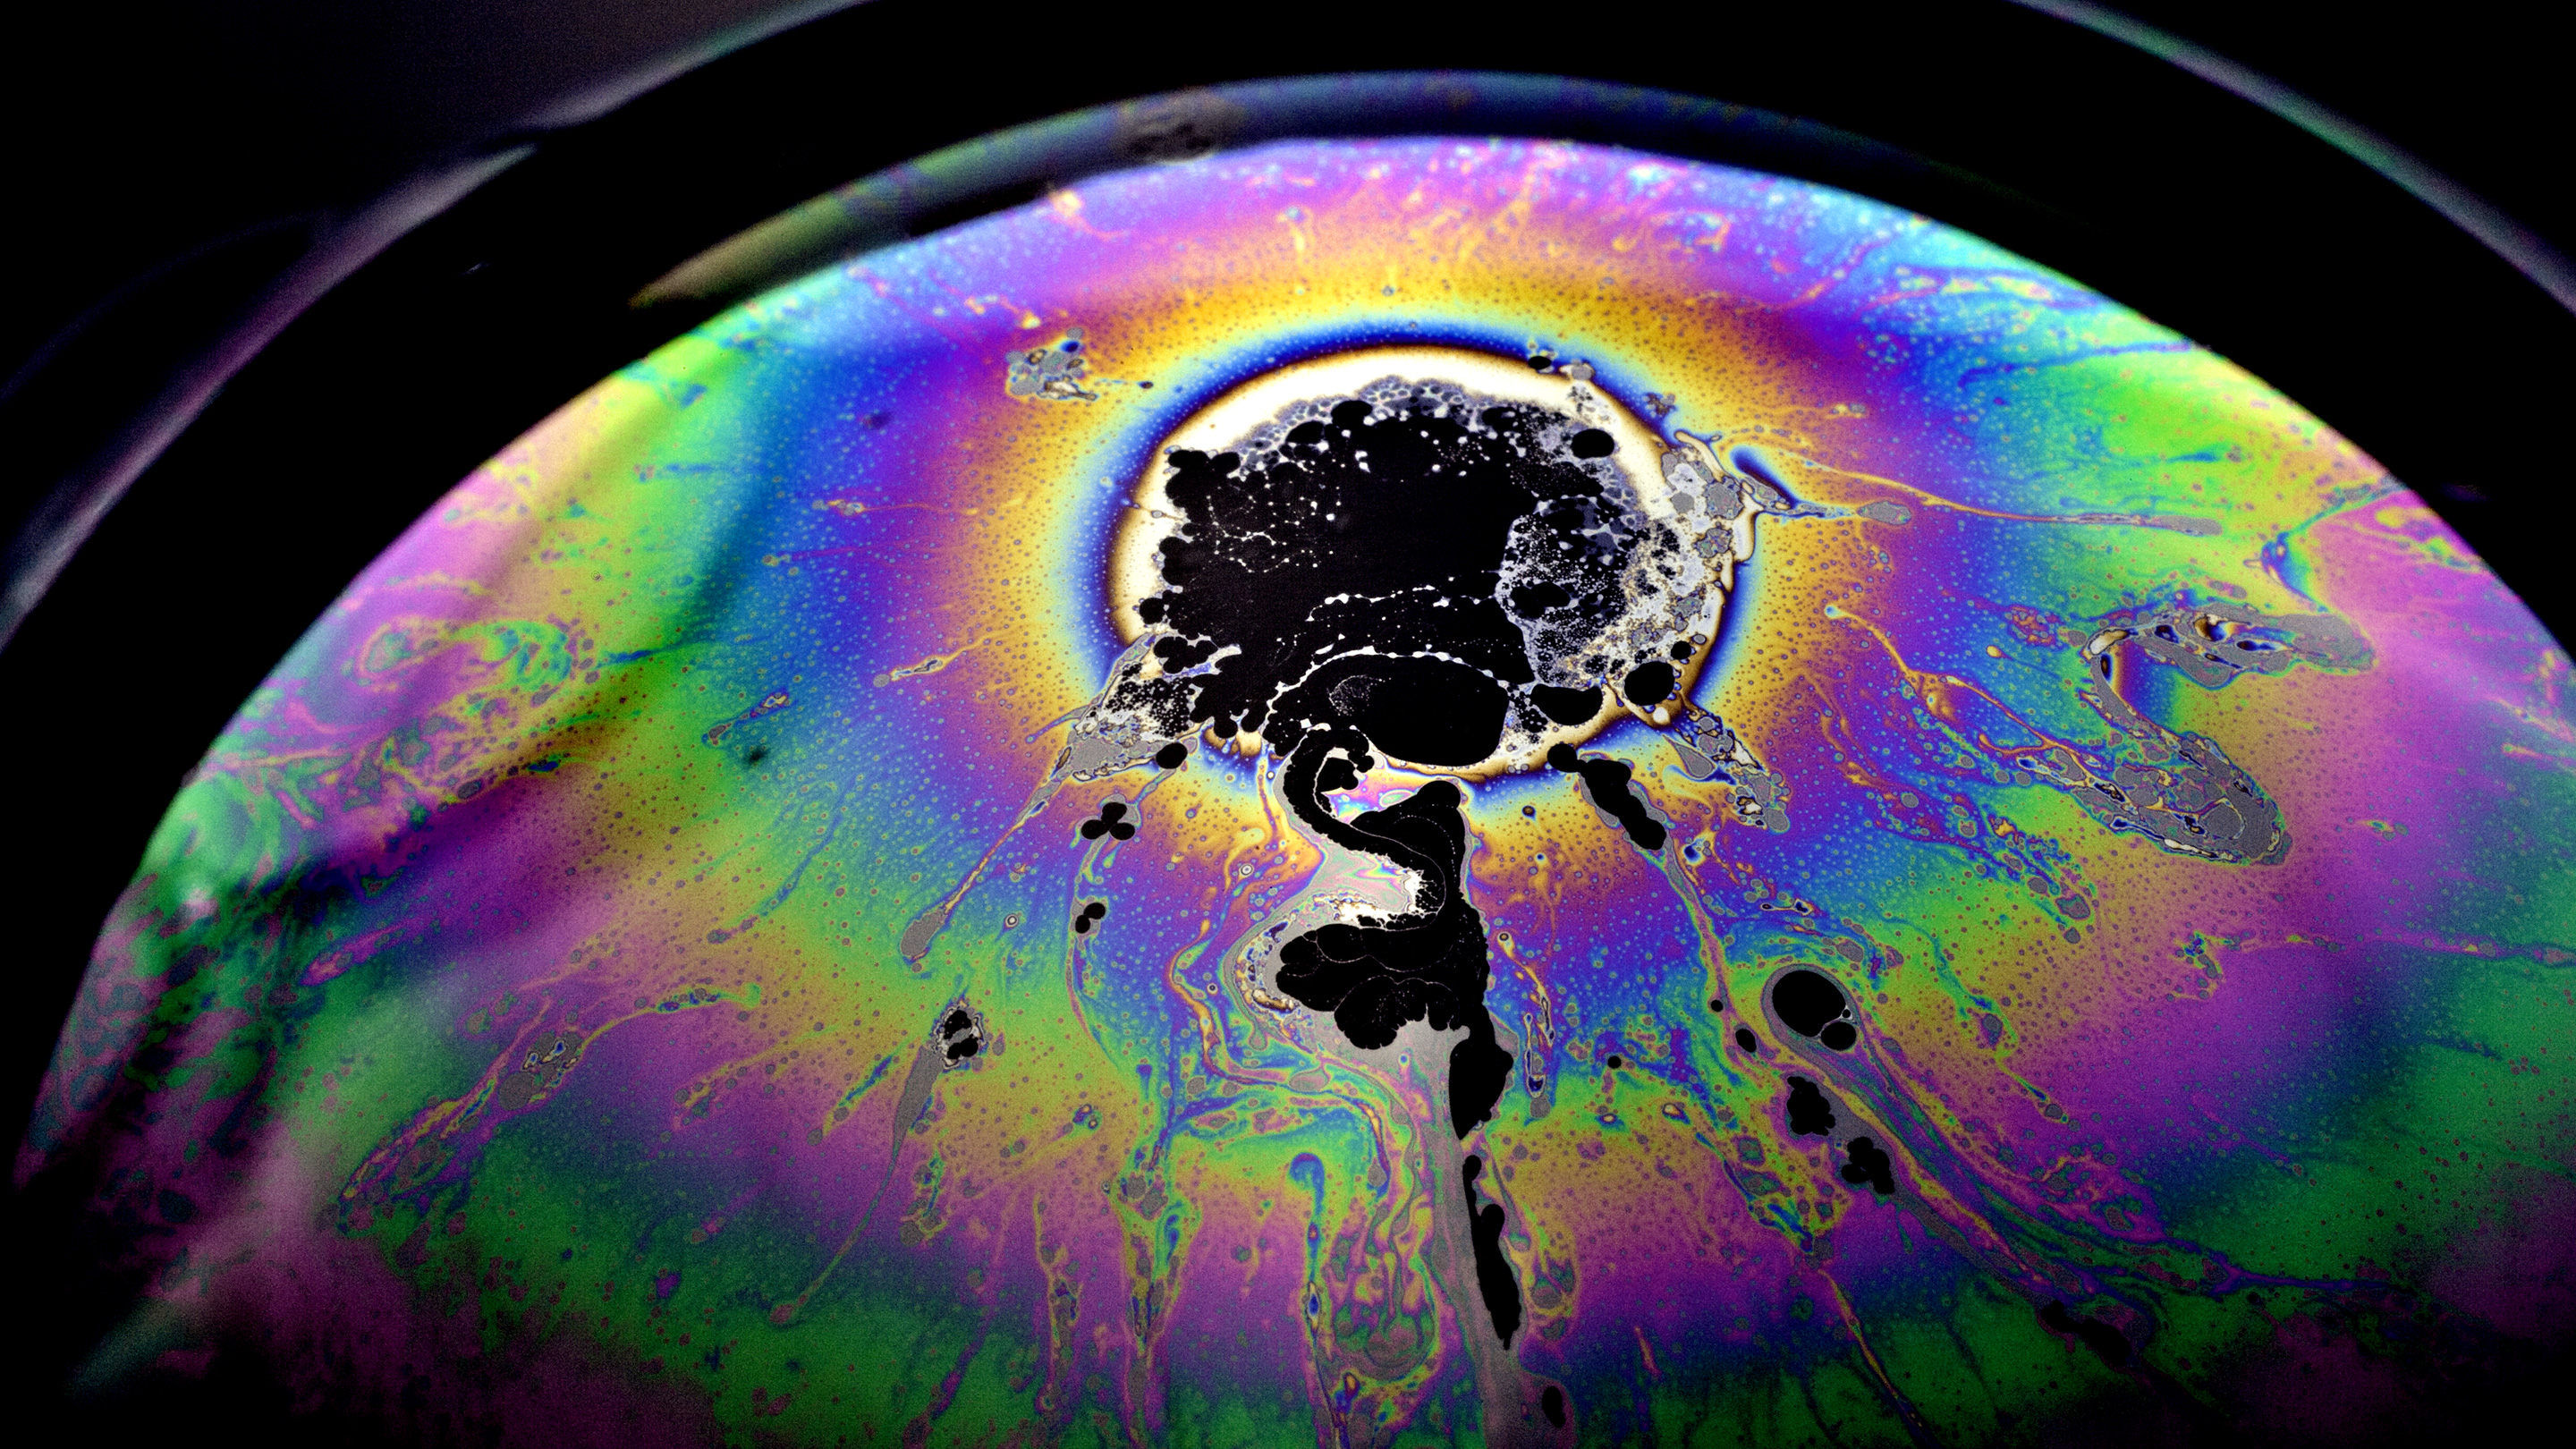 Close-up photograph of a soap bubble with a spot on it that looks as though it must have come from a collision.